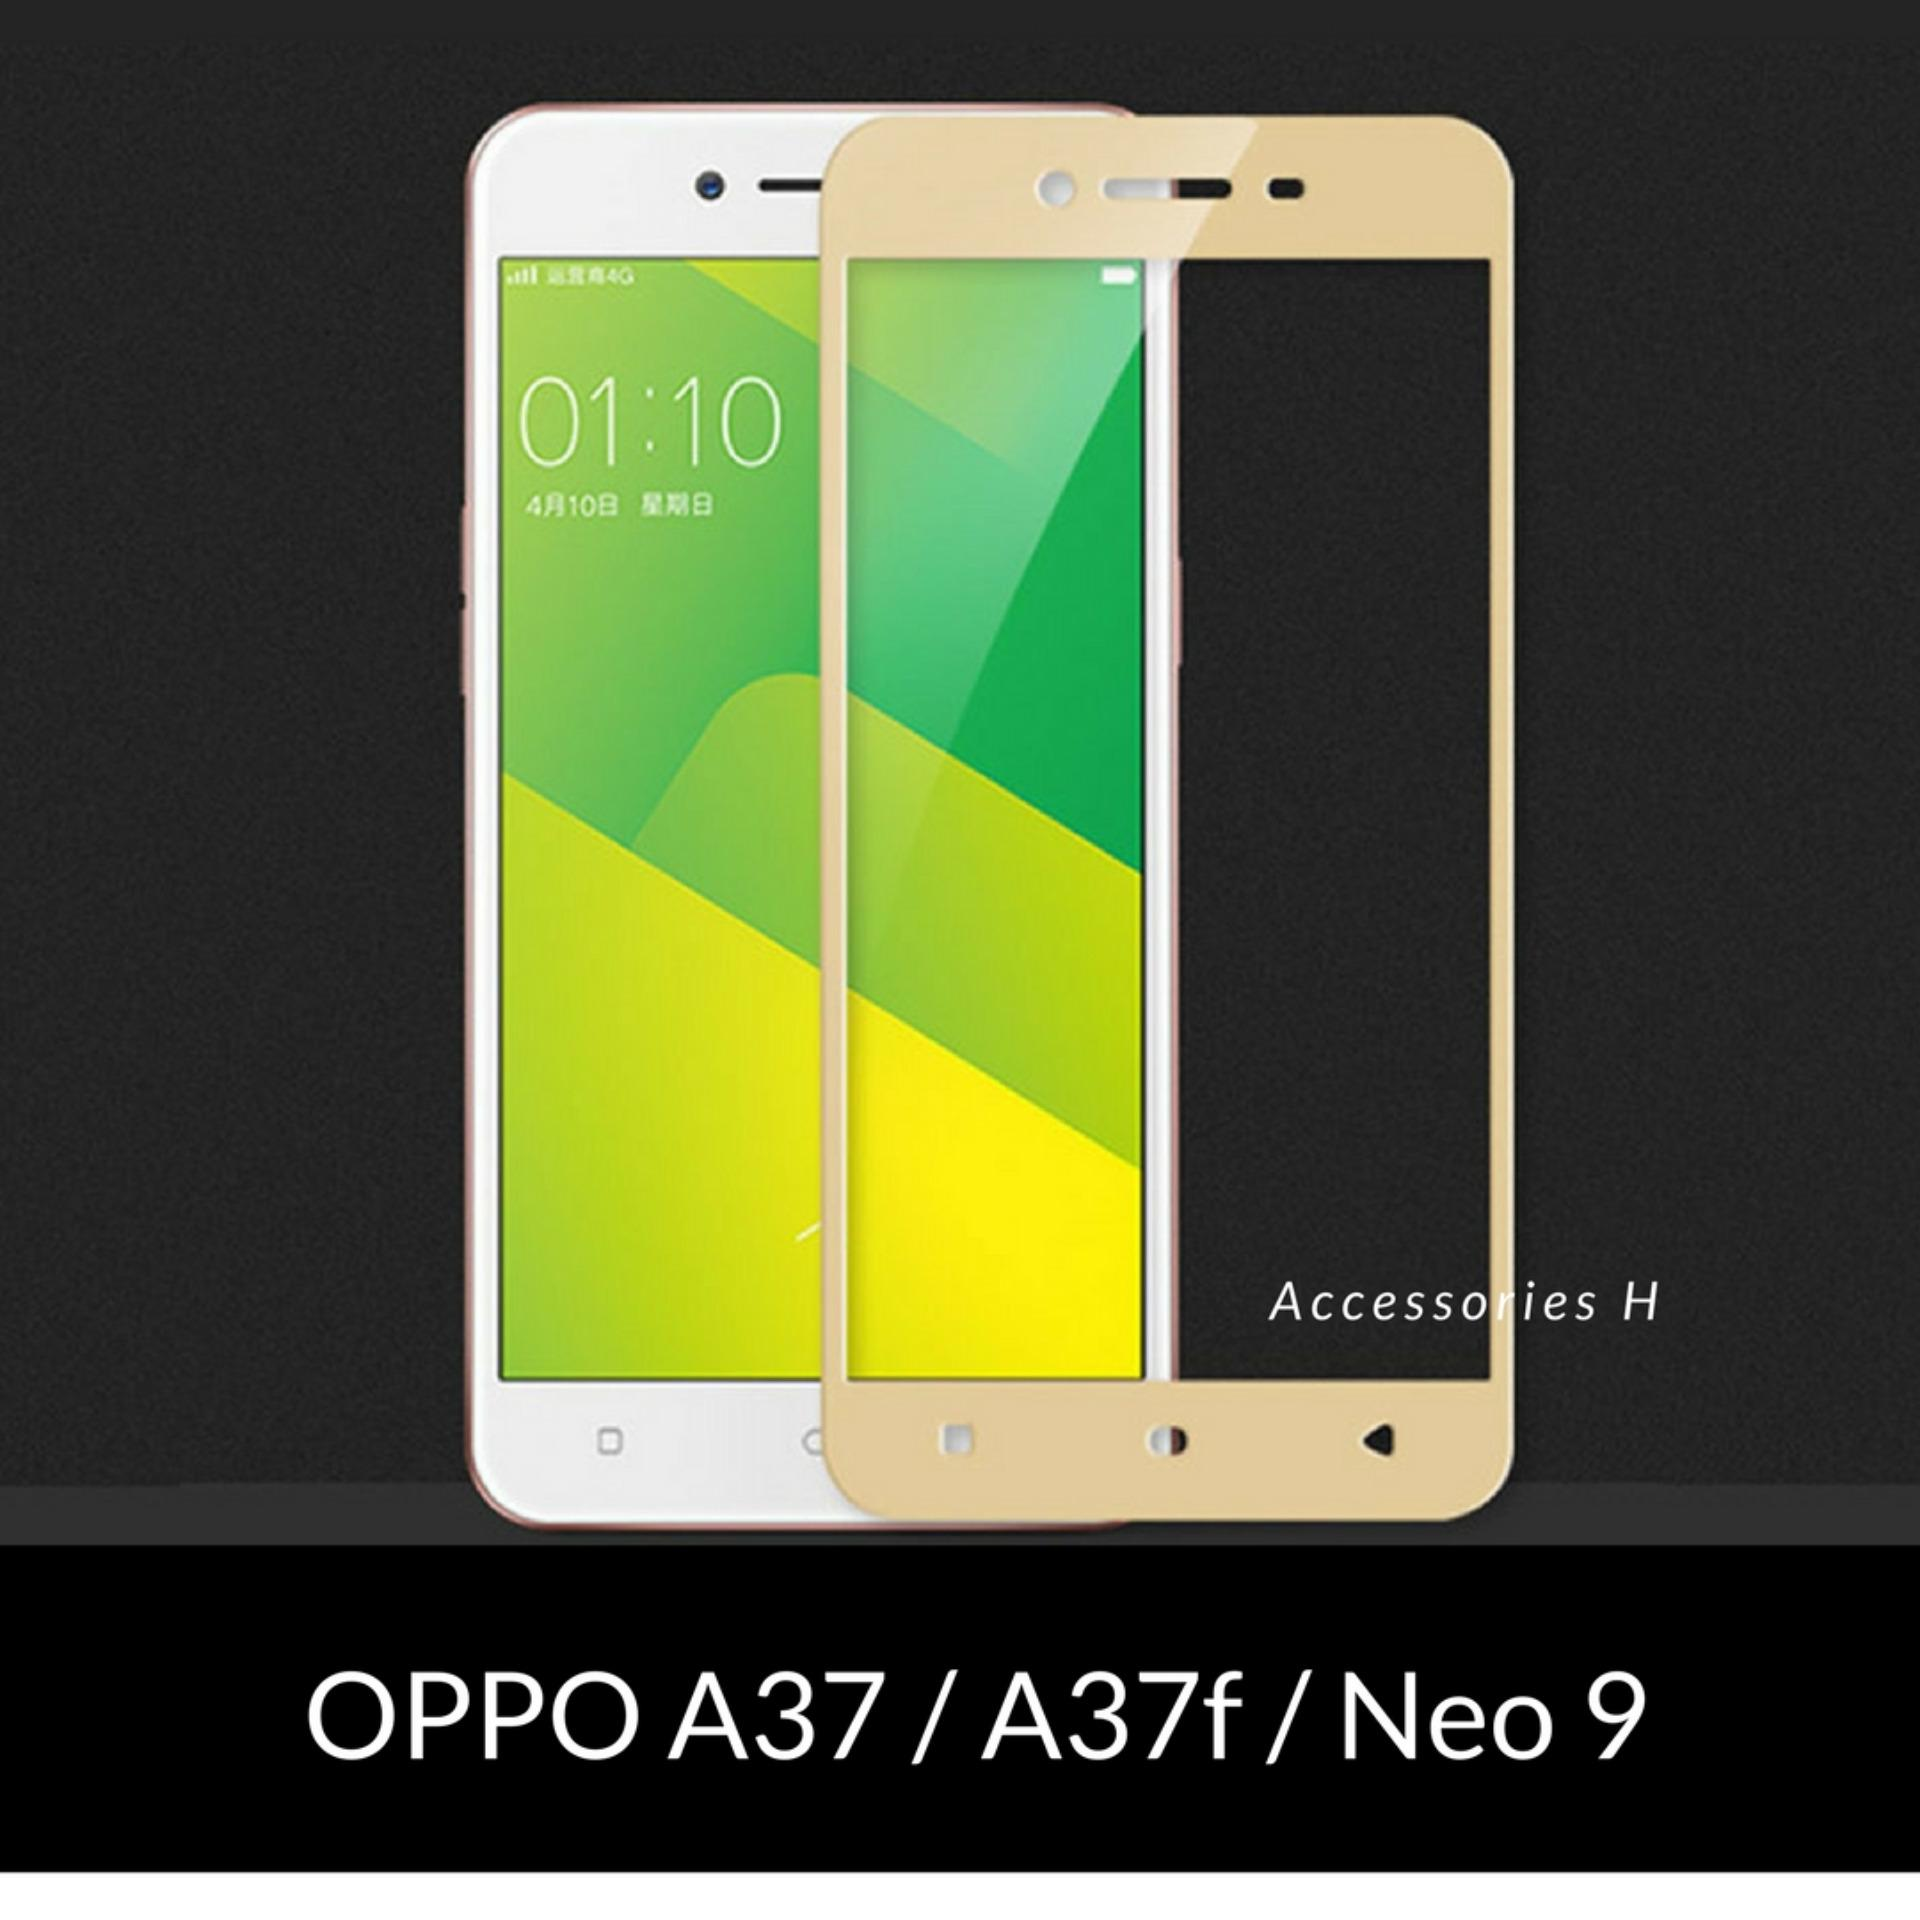 Accessories Hp Full Cover Tempered Glass Warna Screen Protector for Oppo A37 / A37f / Neo 9 - Gold